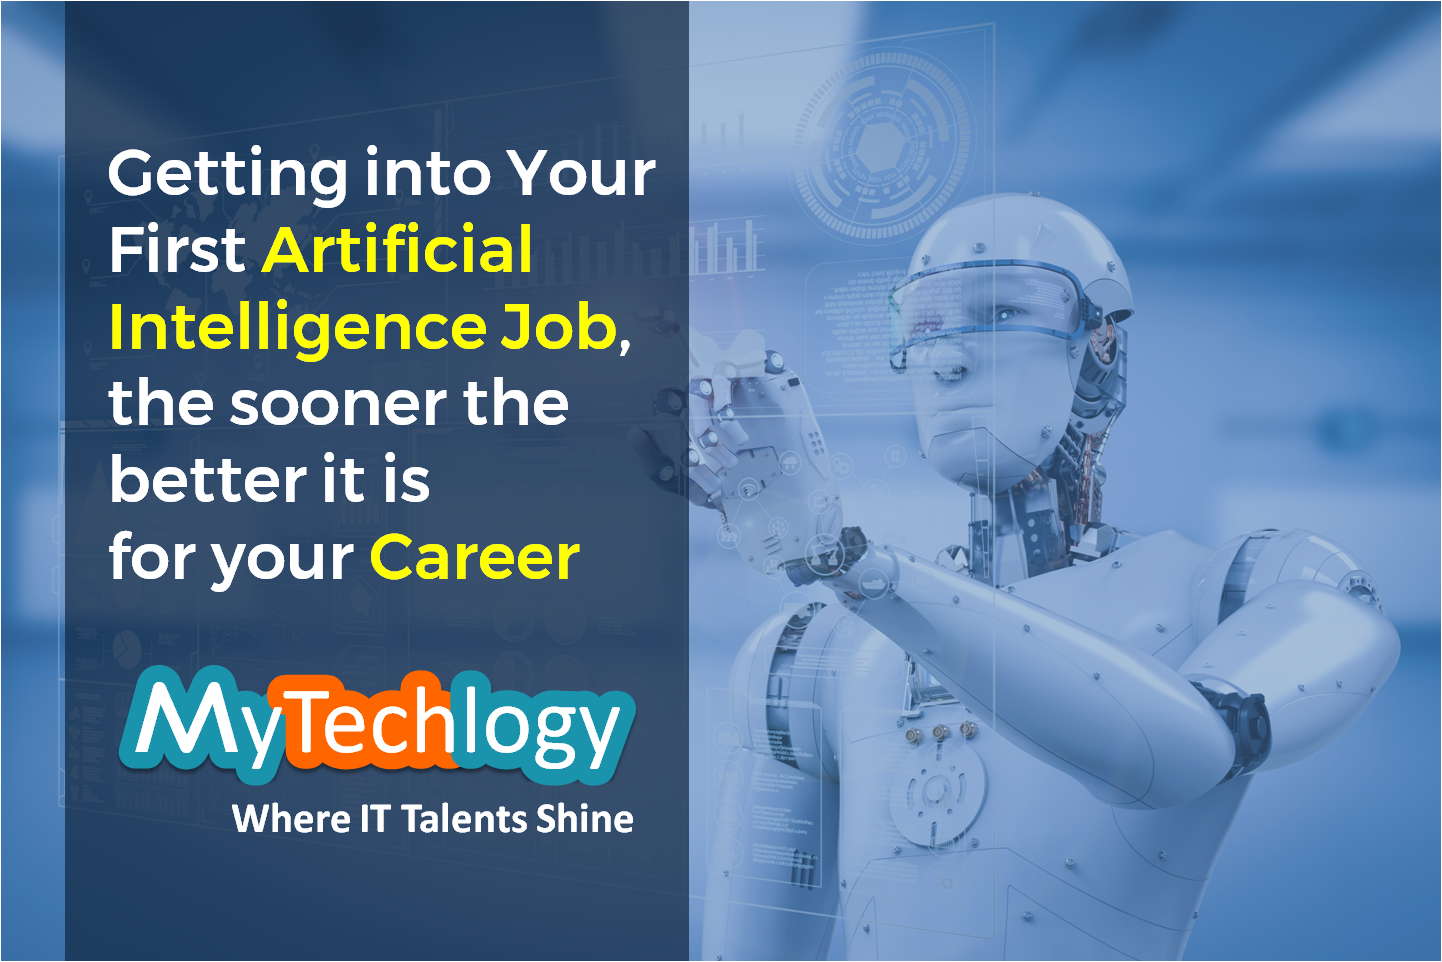 Getting into Your First Artificial Intelligence Job, the Sooner the Better it is for your Career - Image 1